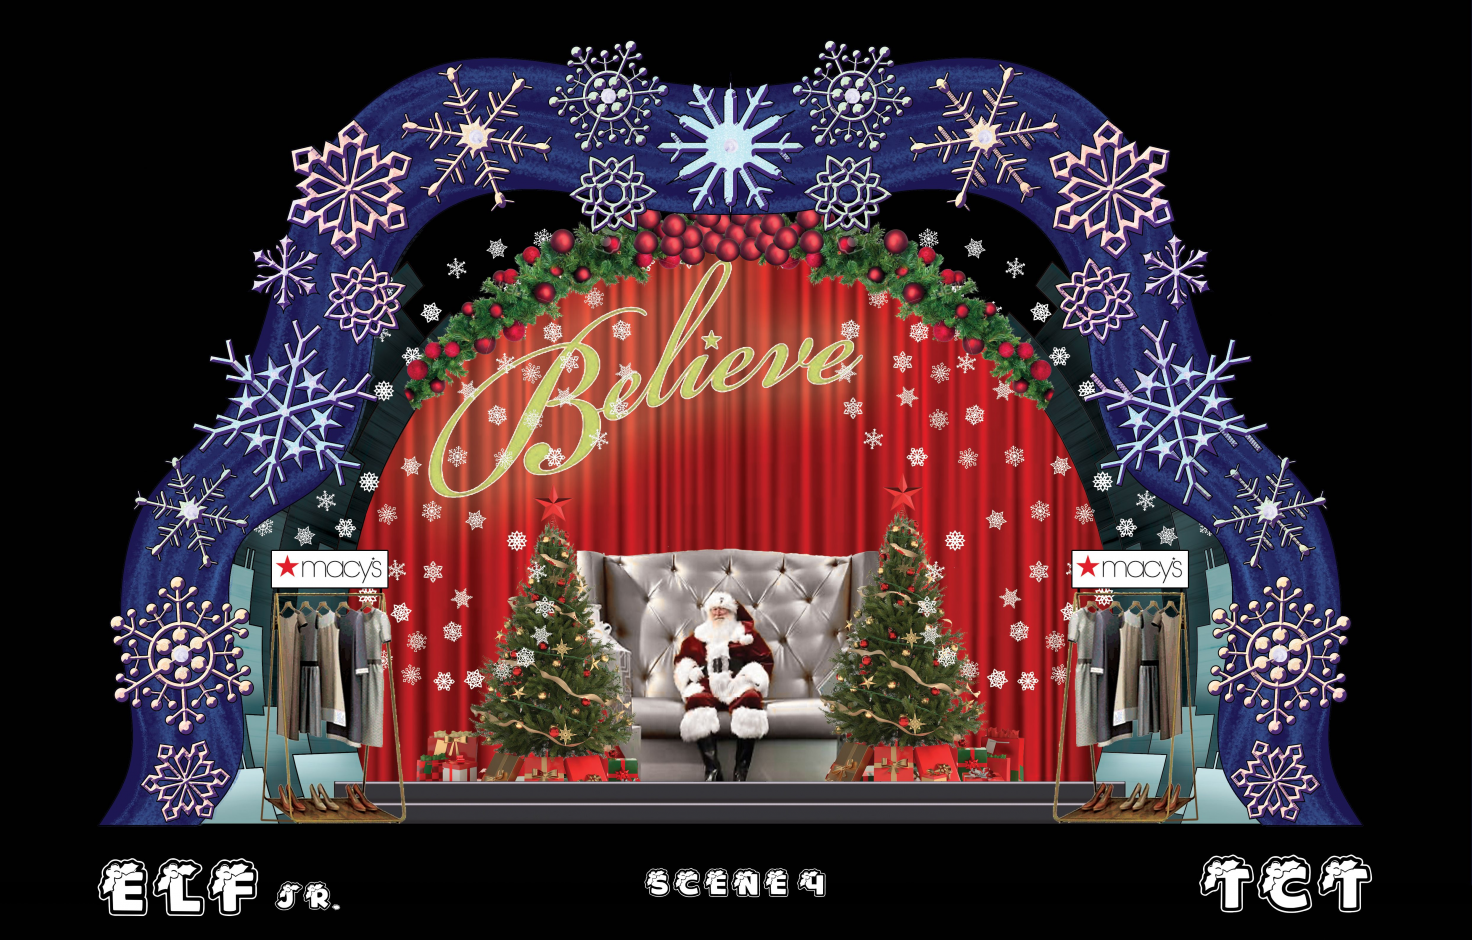 mockup of Elf JR set - blue outline of snowflakes around Santa at the mall